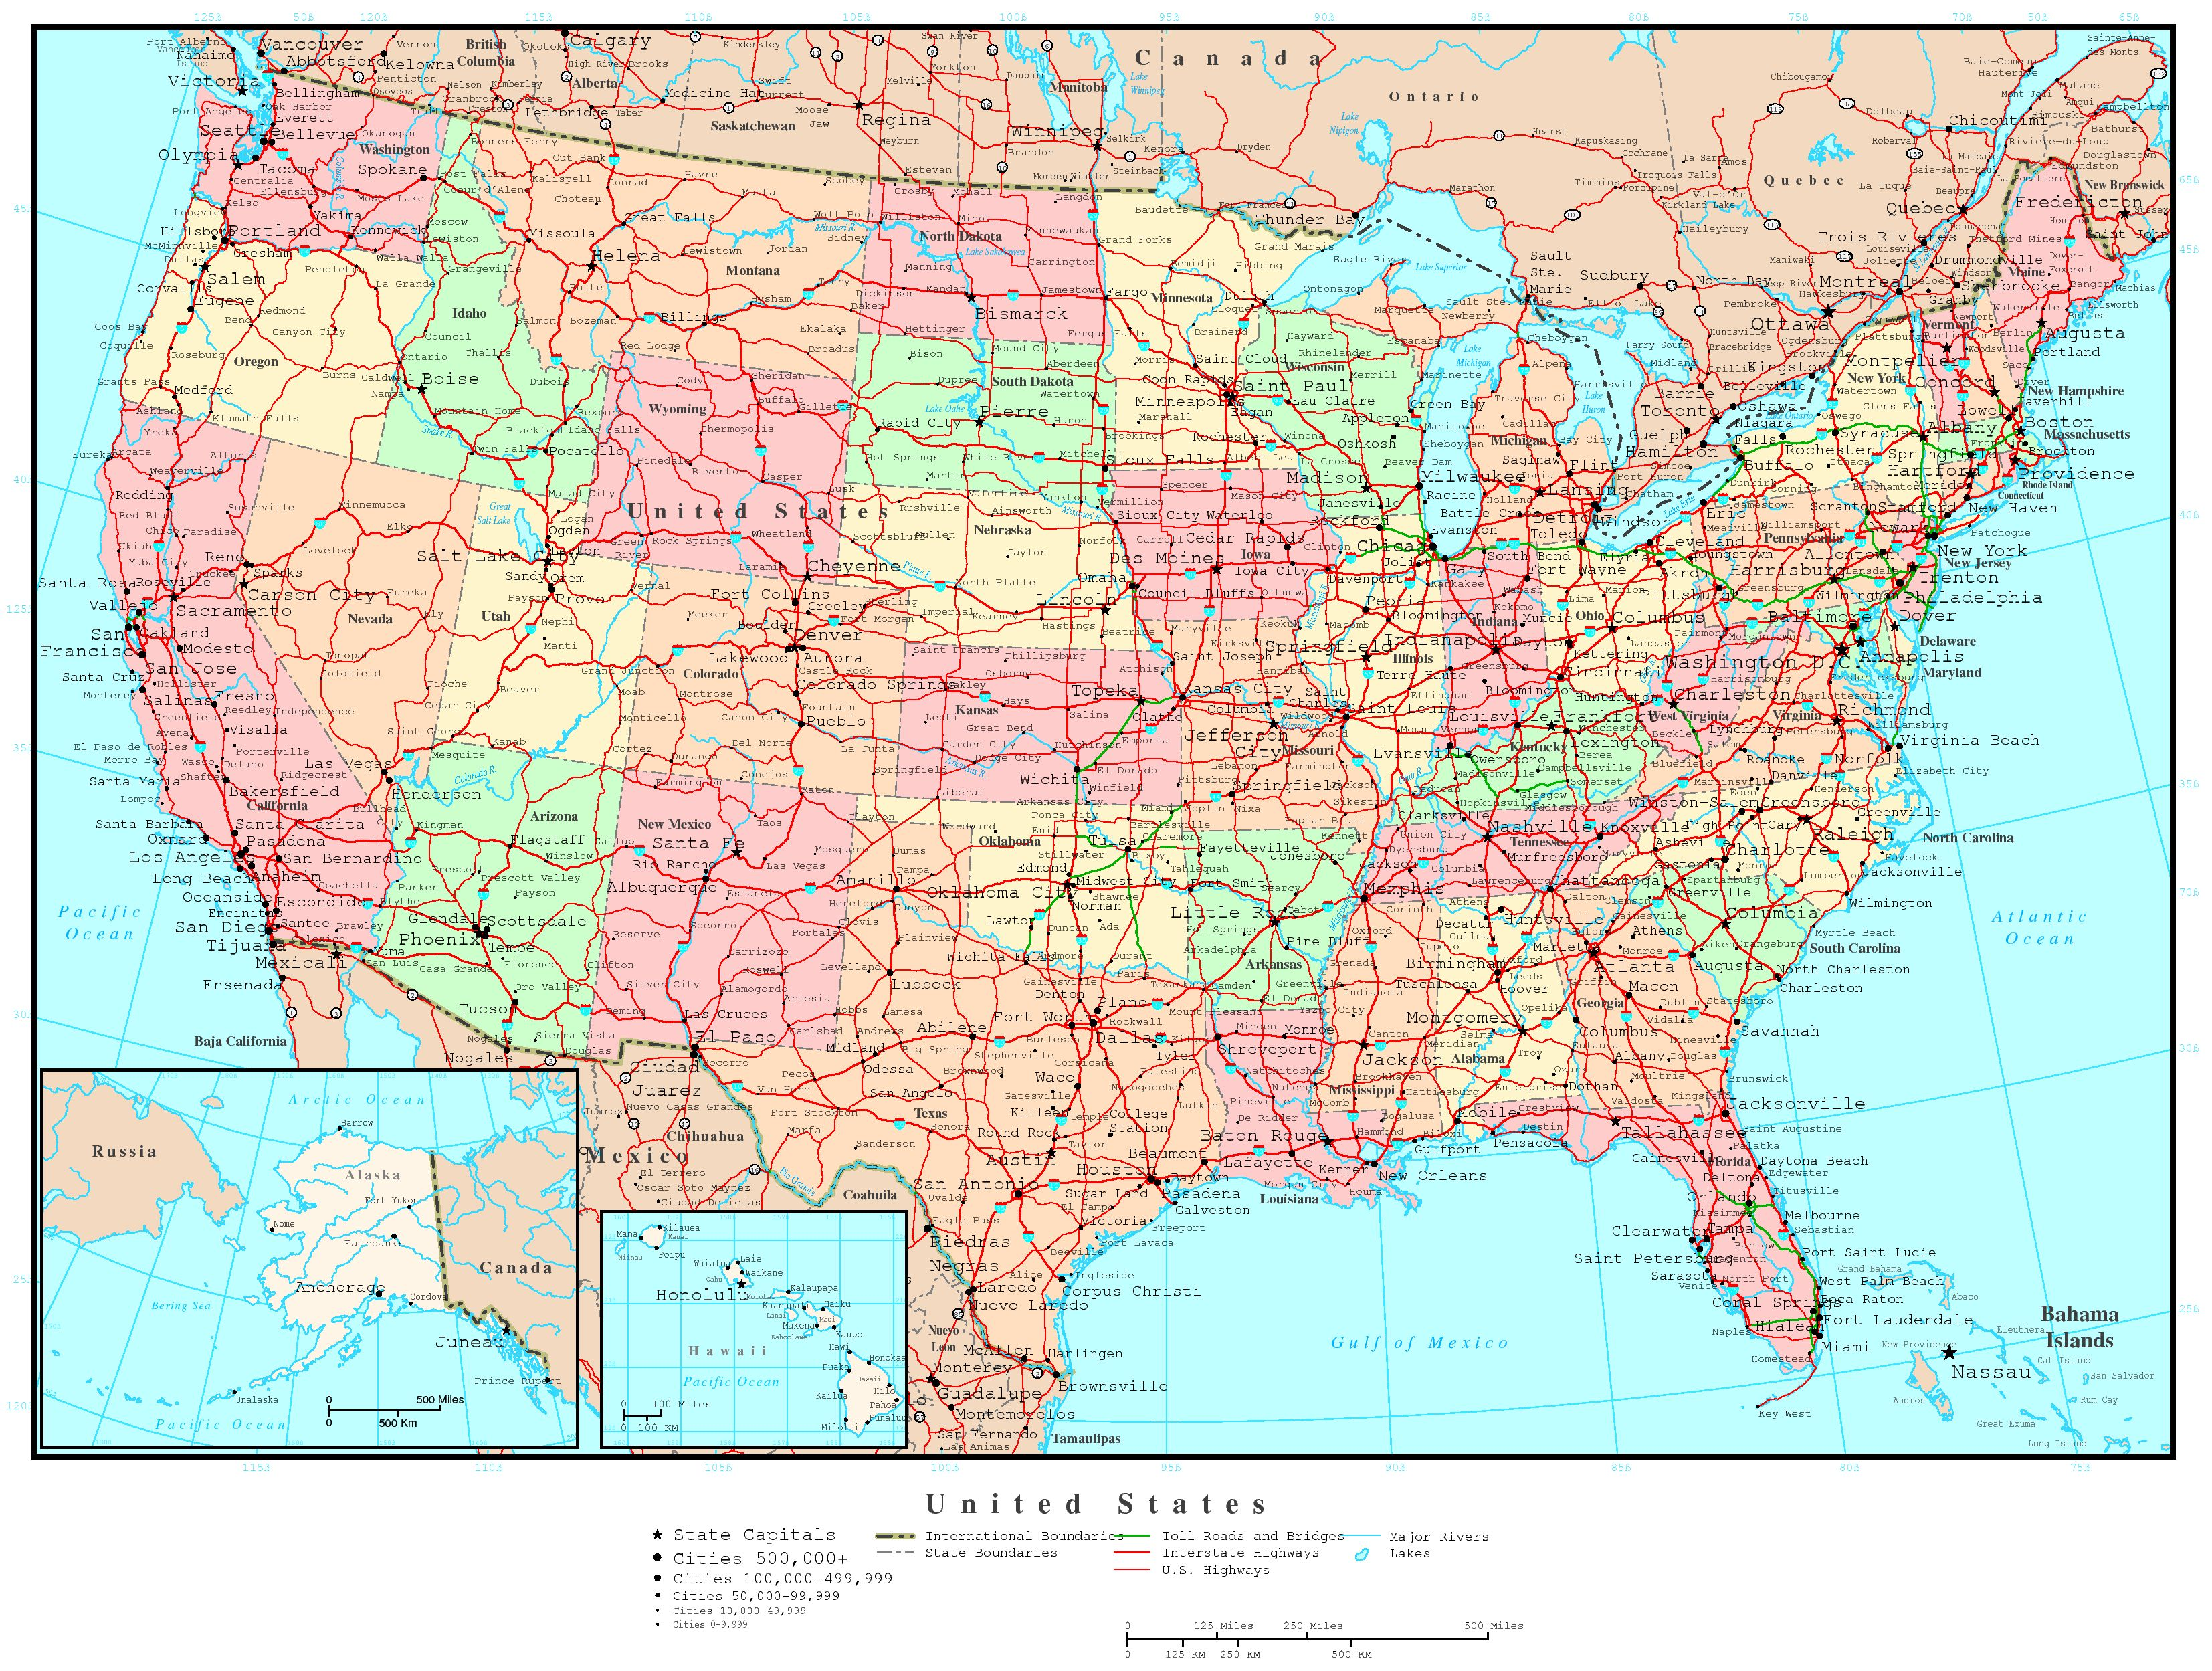 United States Political Map - Usa map of the states